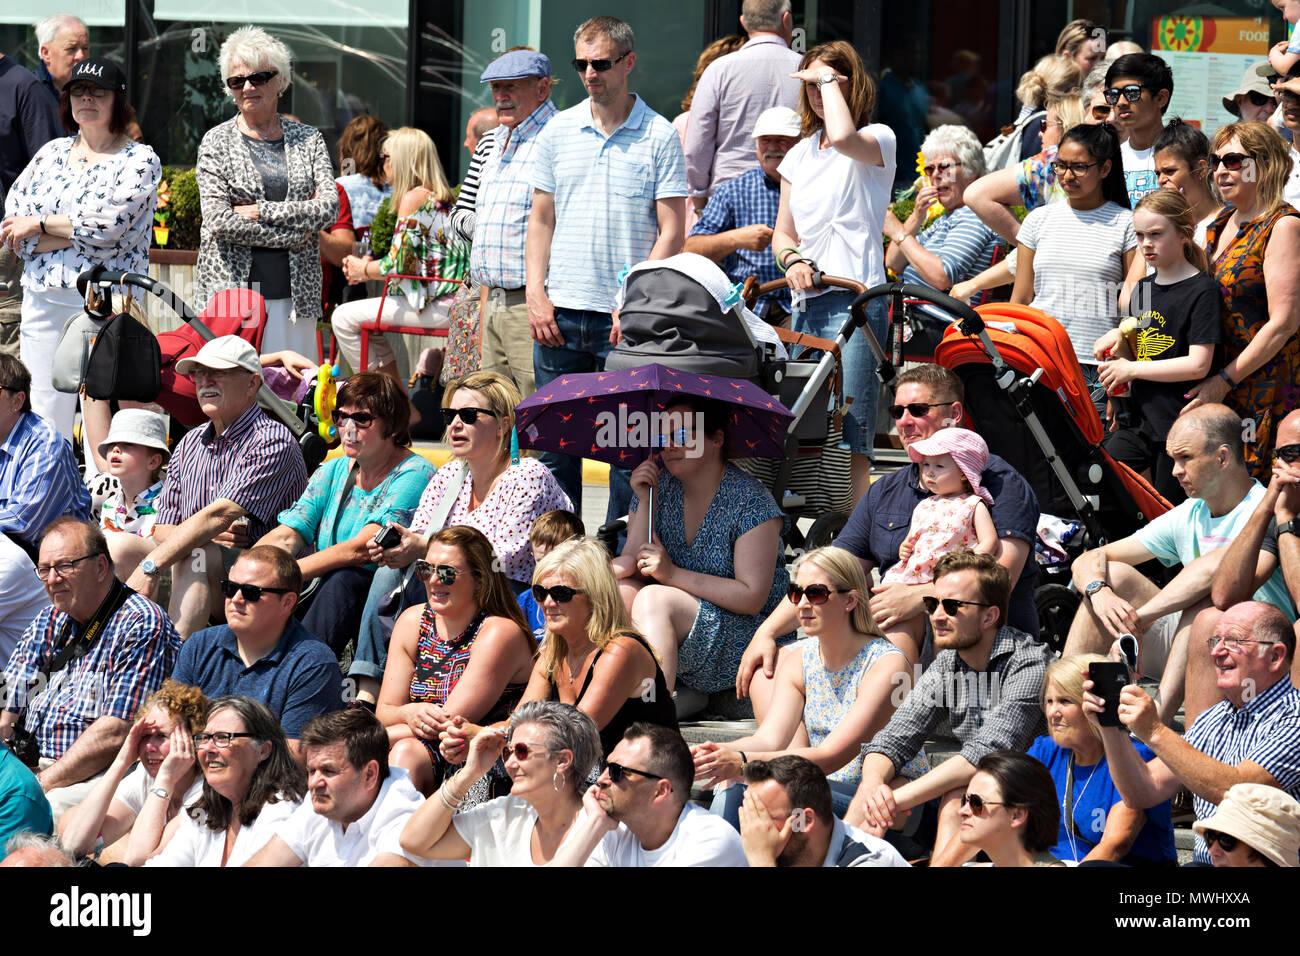 A lady using an umbrella as a sunshade during the recent May hot weather - Stock Image